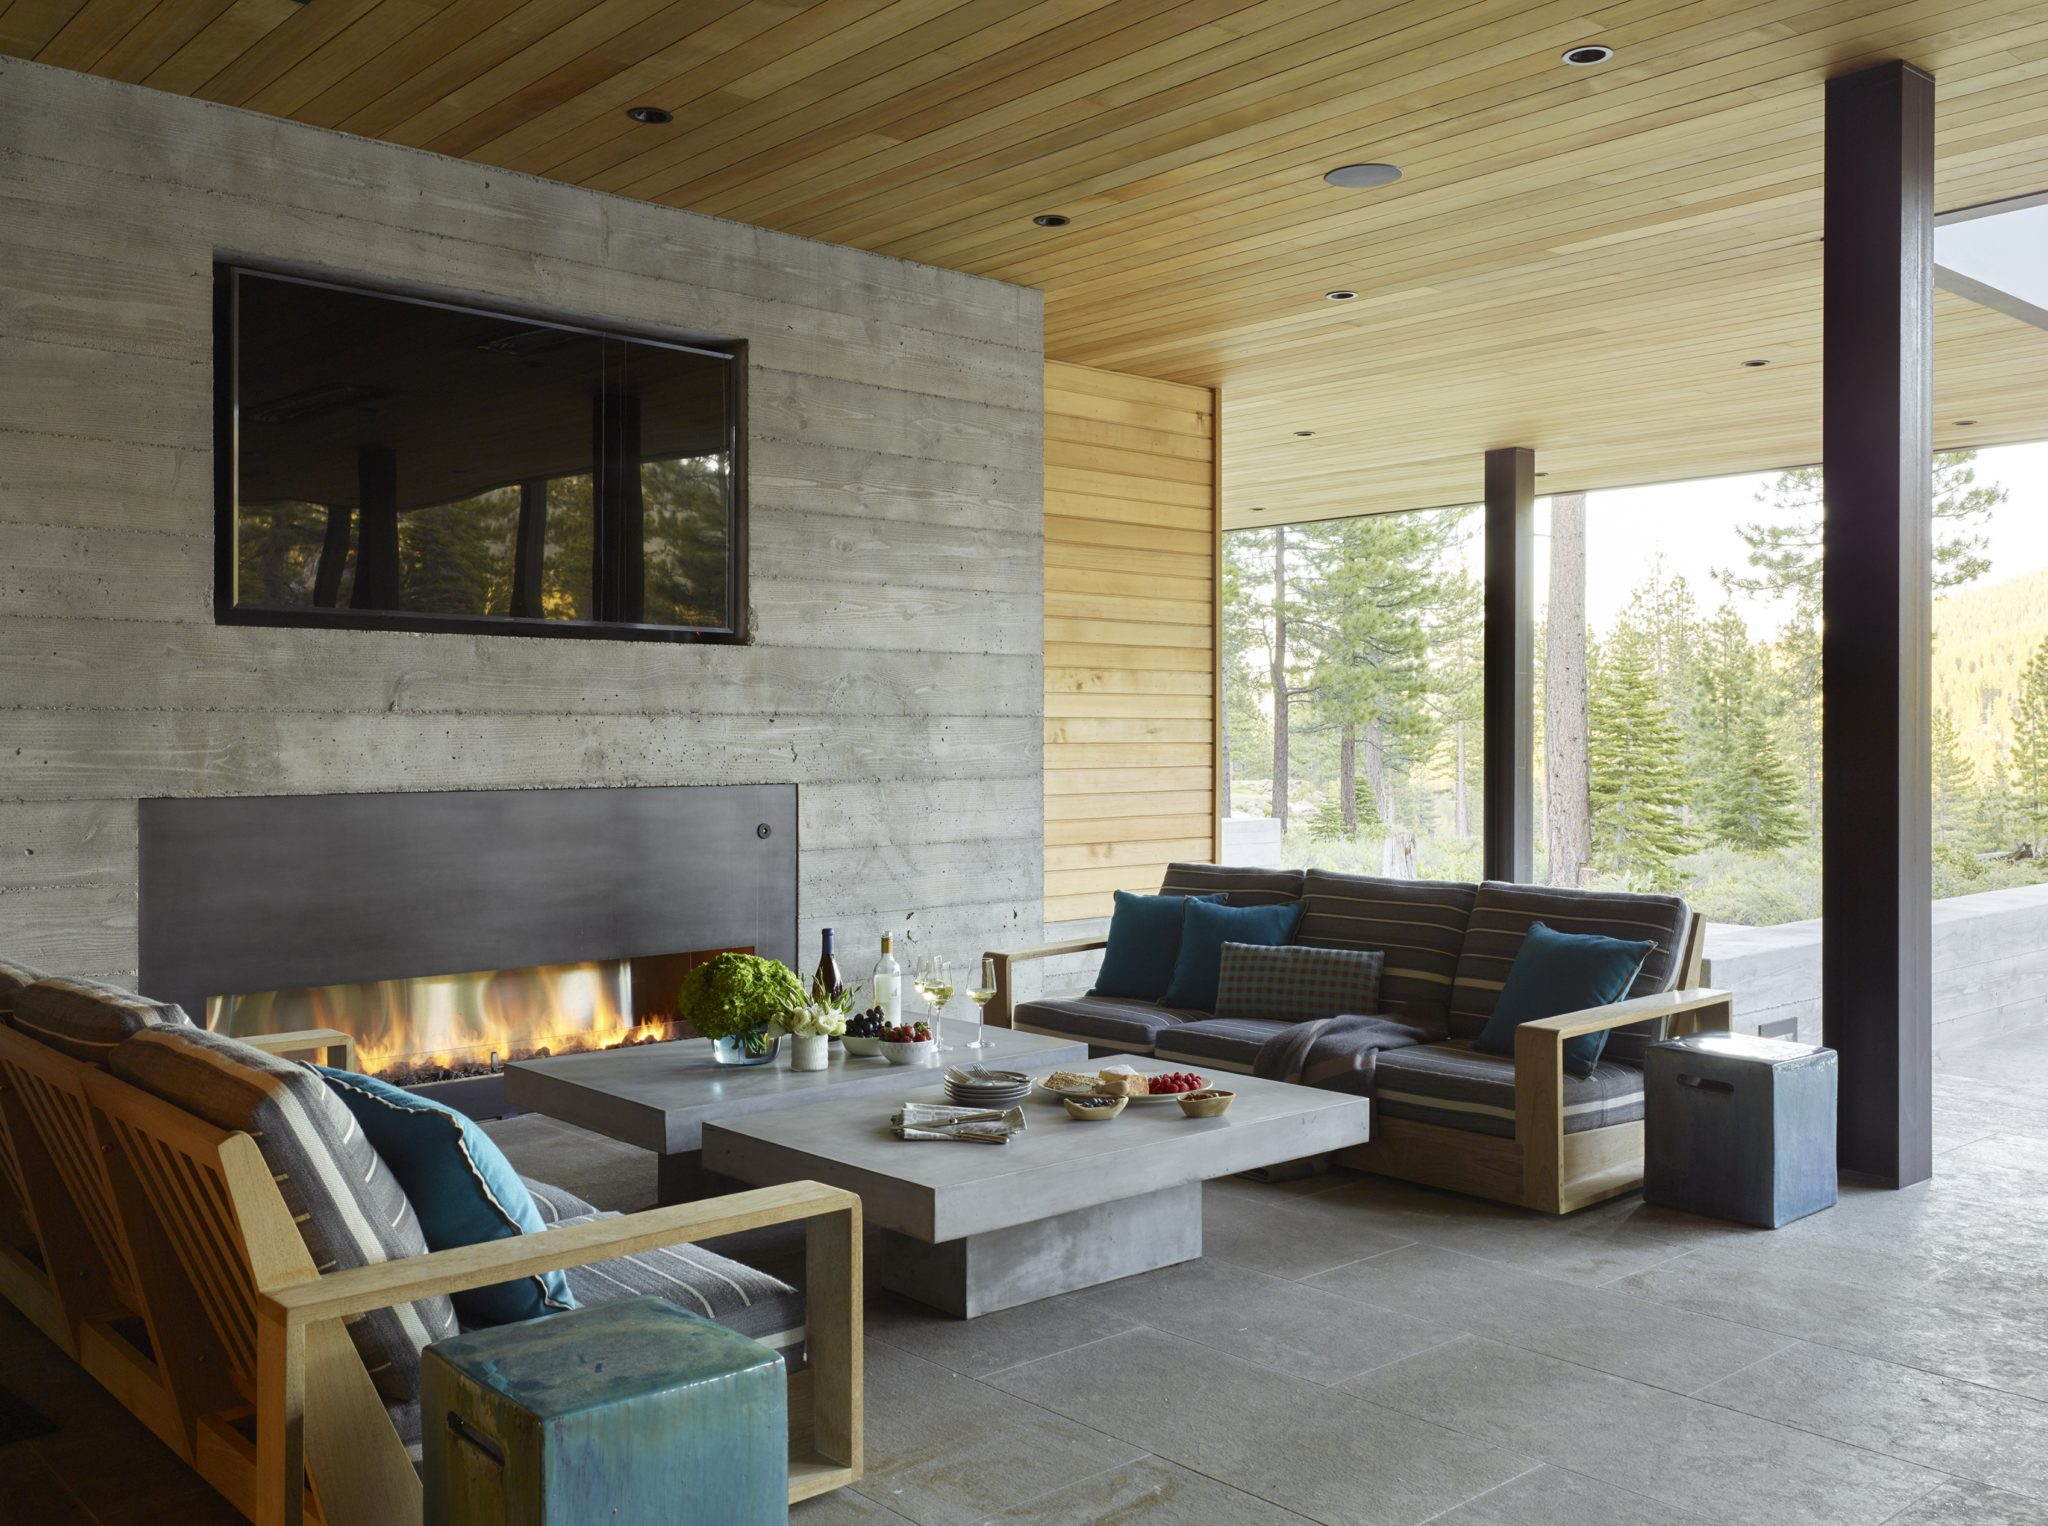 Tahoe Marvel, Outdoor living space with Sutherland teak sofas. by Kelly Hohla Interiors